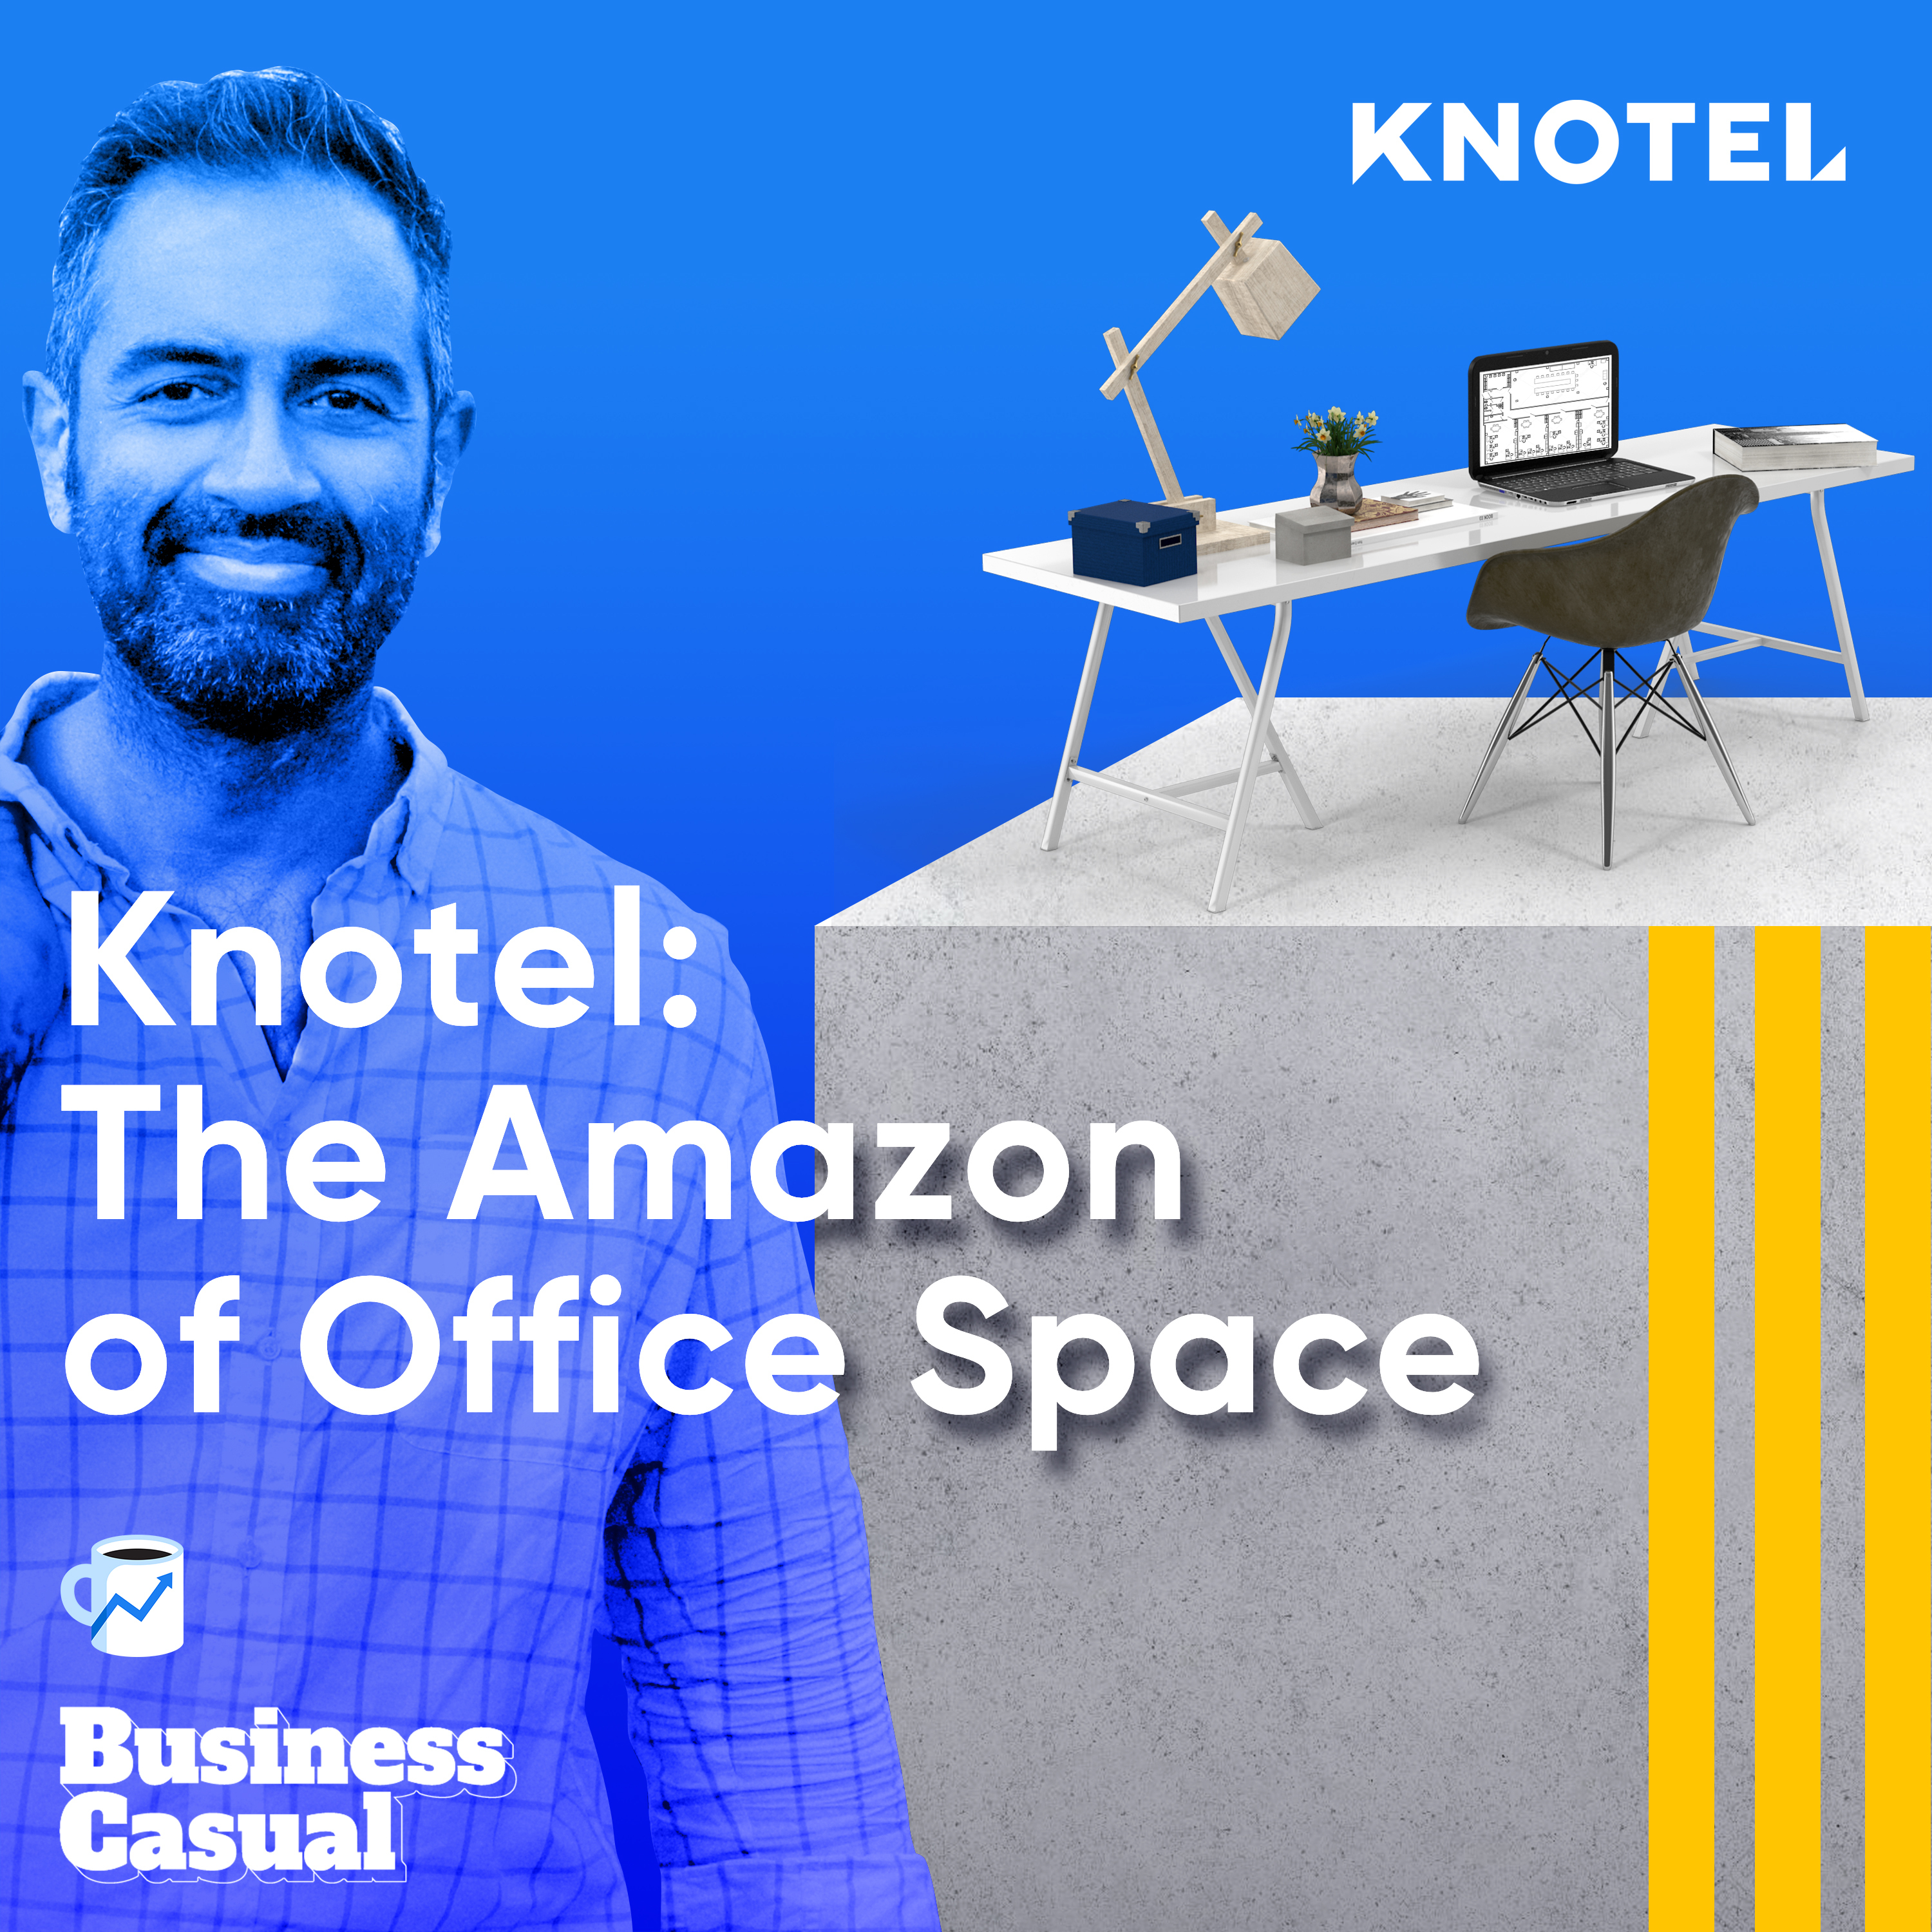 Knotel: The Amazon of office space